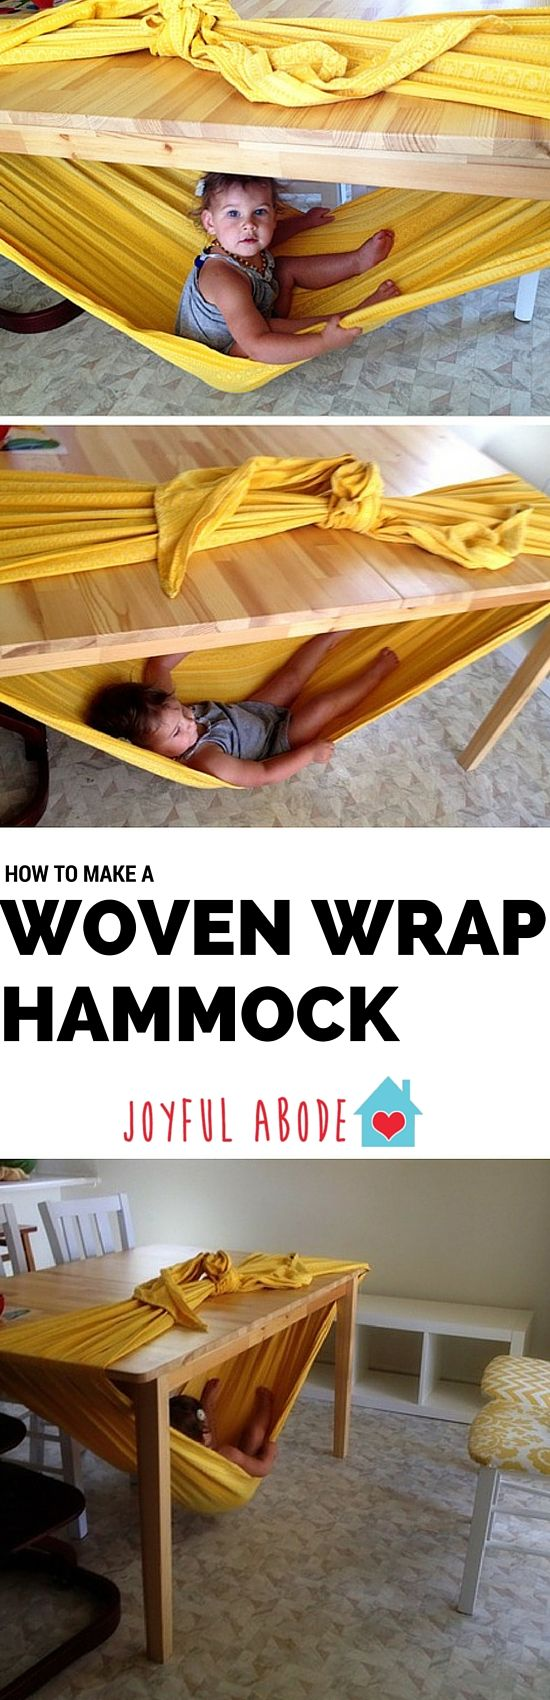 How to make a woven wrap hammock - tons of indoor rainy-day fun. Great kids' activity. (made with a woven babywearing wrap, not a blanket)